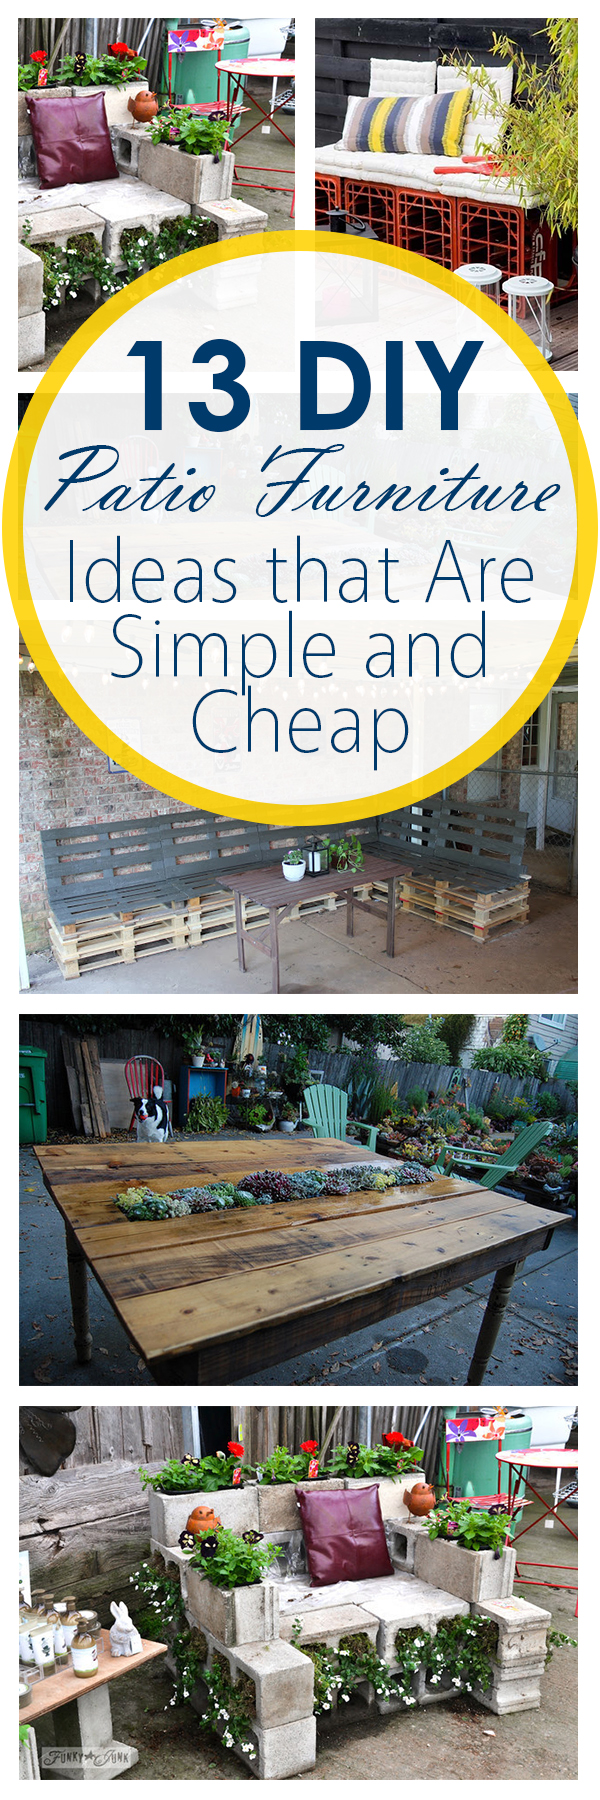 Simple And Cheap Living Room Decoration: 13 DIY Patio Furniture Ideas That Are Simple And Cheap